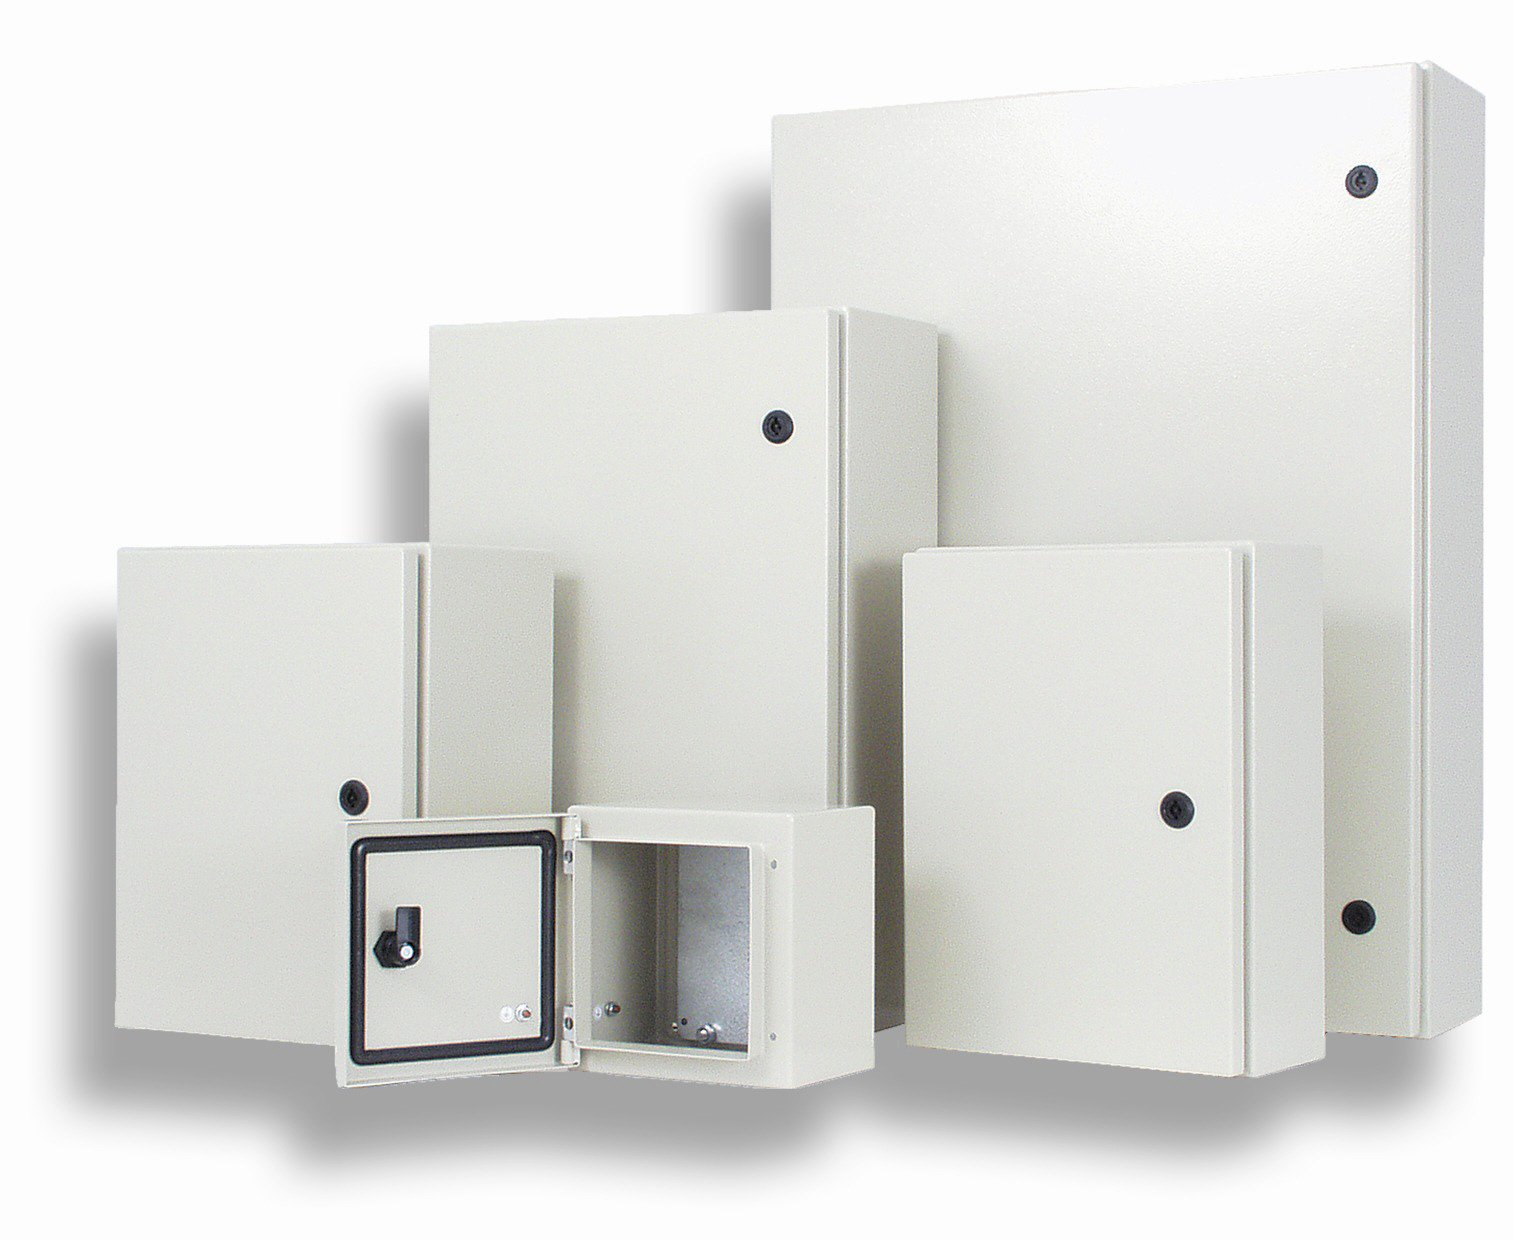 Metal enclosures